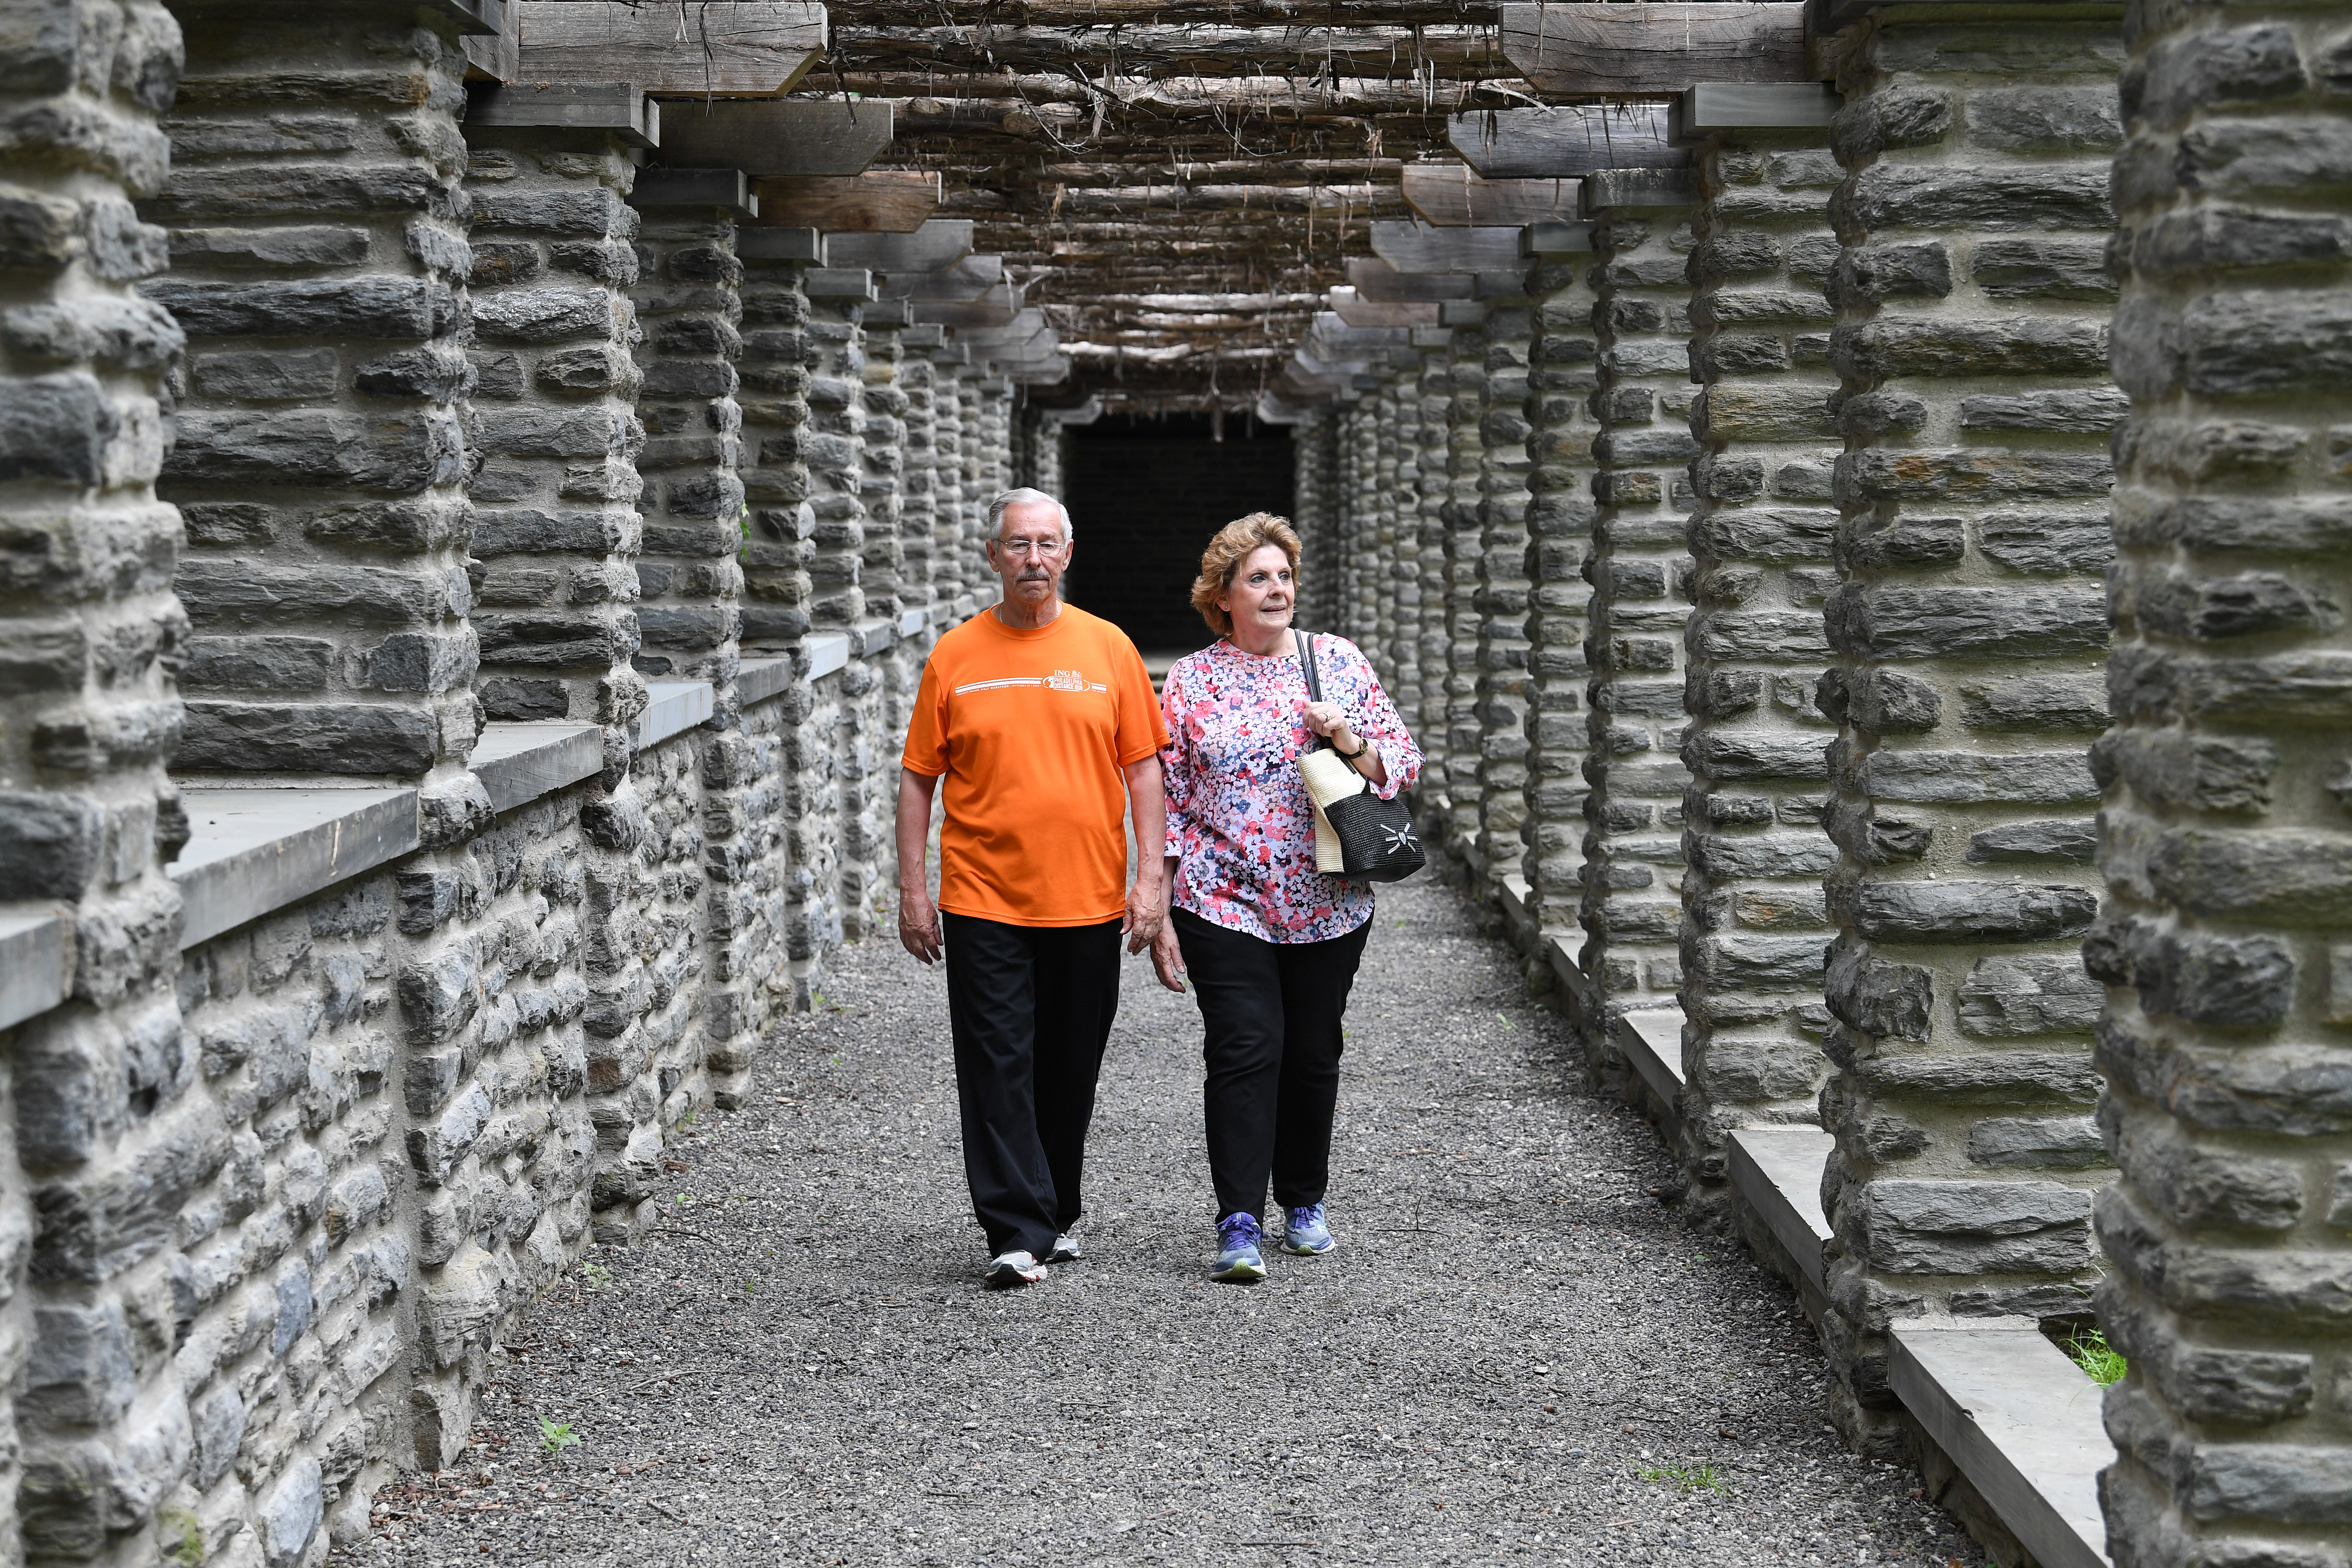 Fran Ingelsby and Renee Ingelsby of Newtown Square walked through this picturesque stone structure at Stoneleigh natural lands garden on Wednesday, May 30, 2018.